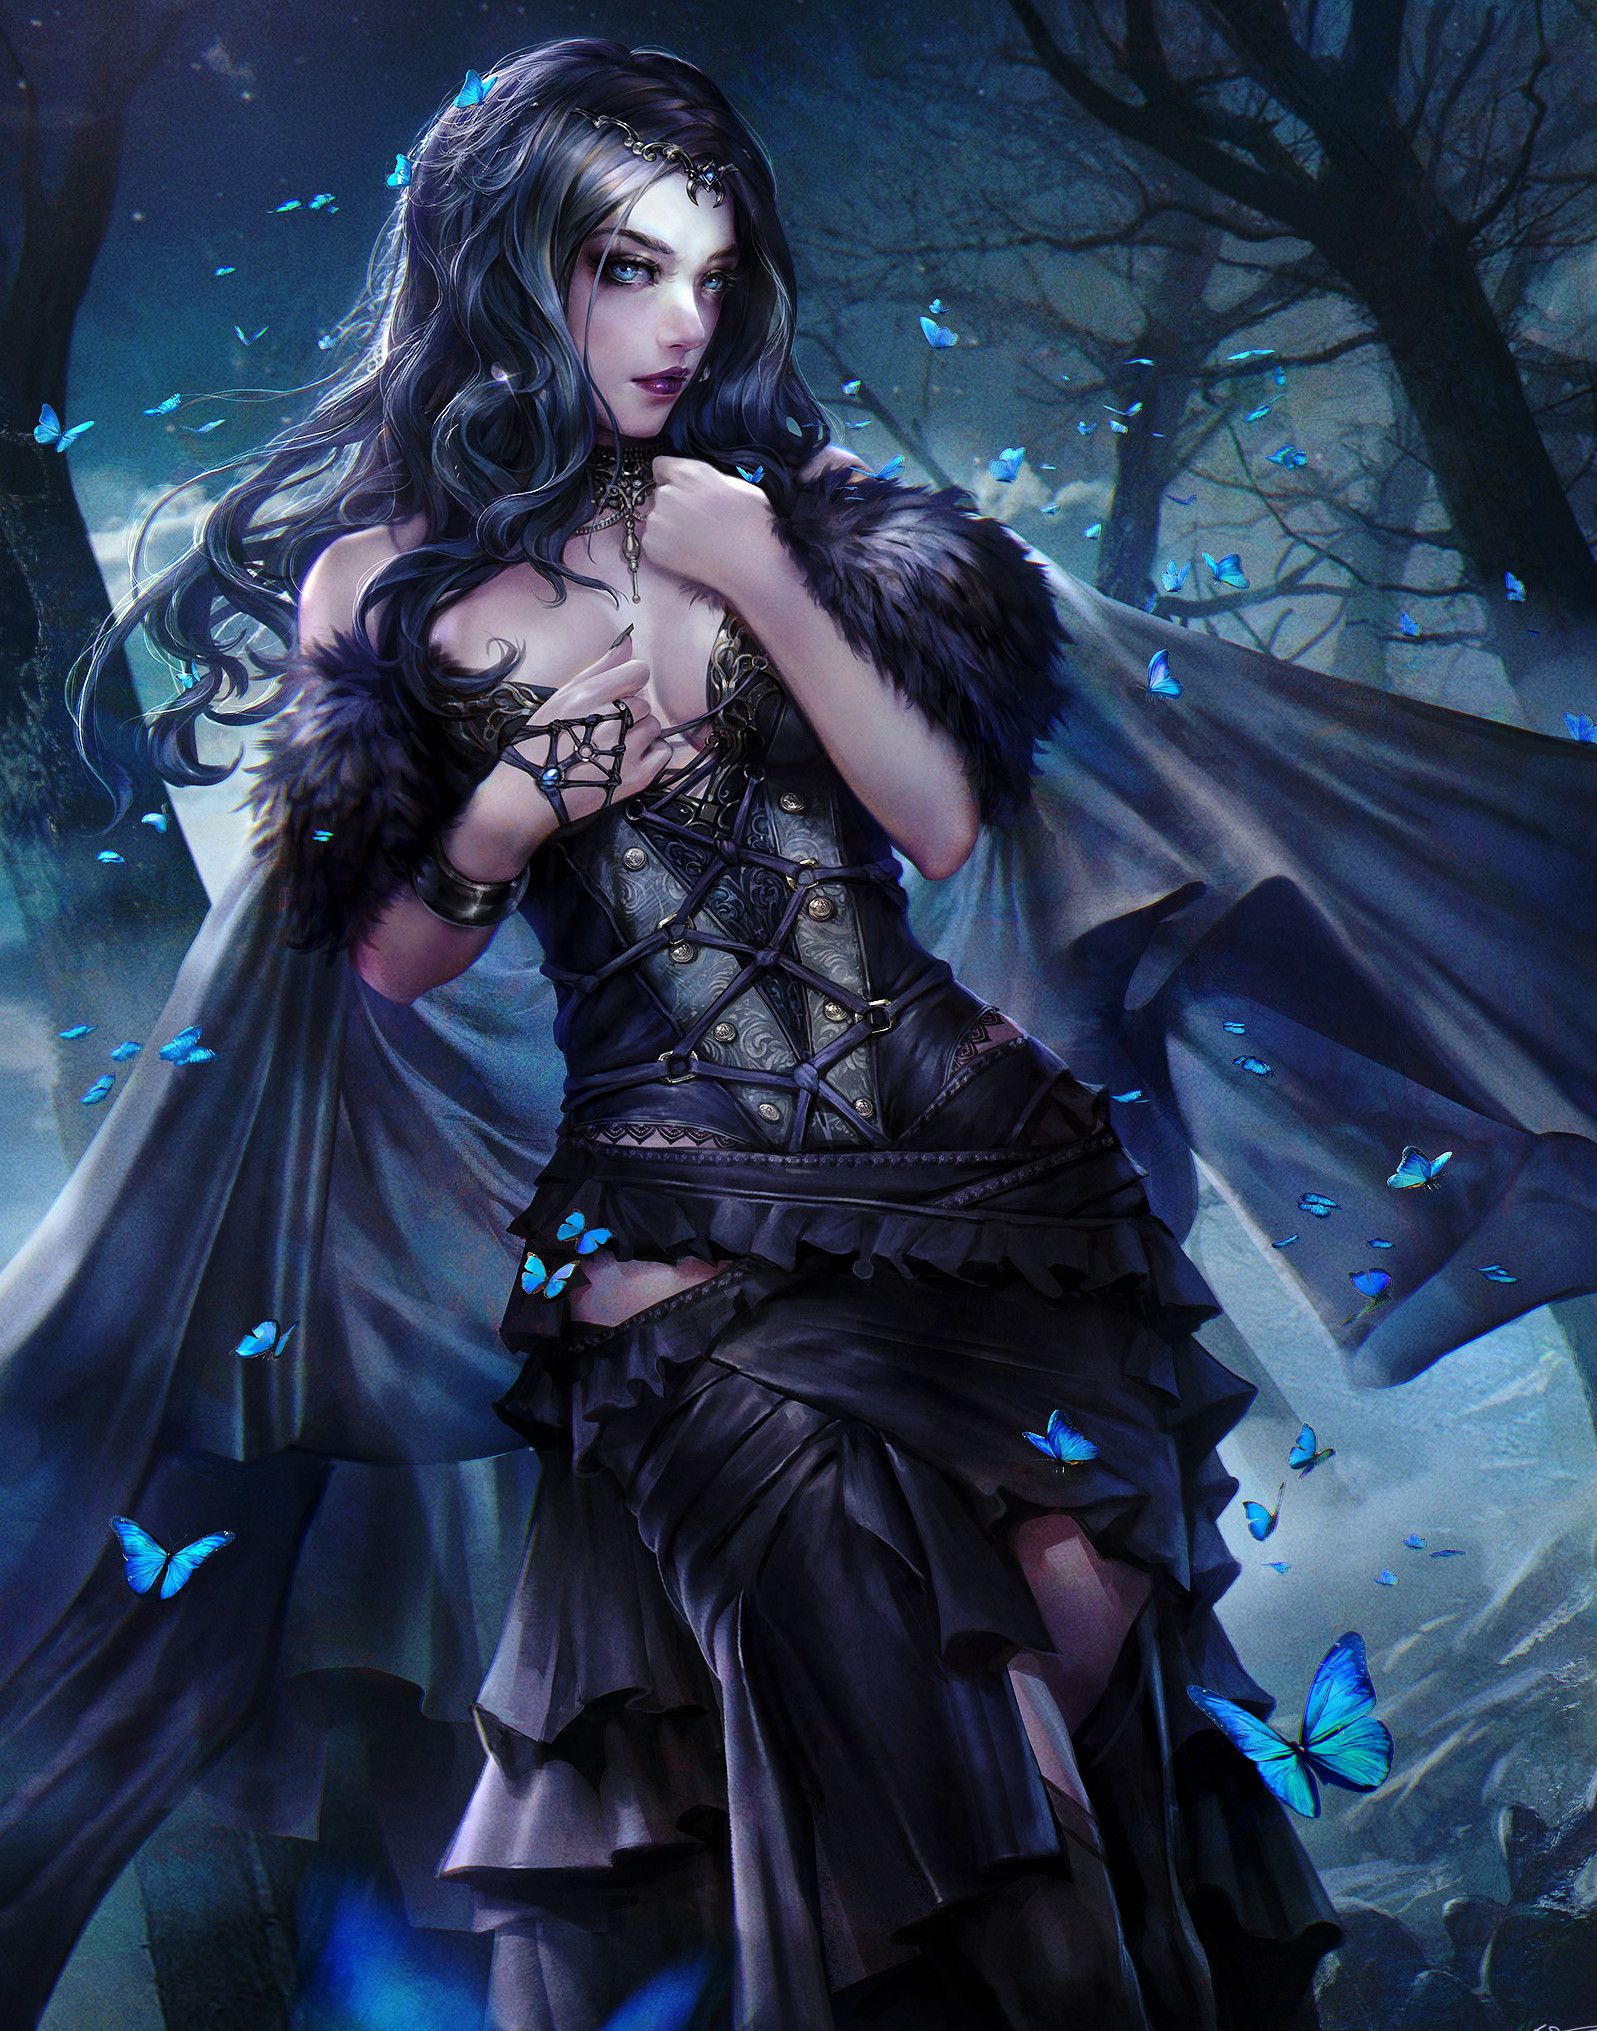 Pin By Seilah On Fantasy Character Dark Fantasy Art